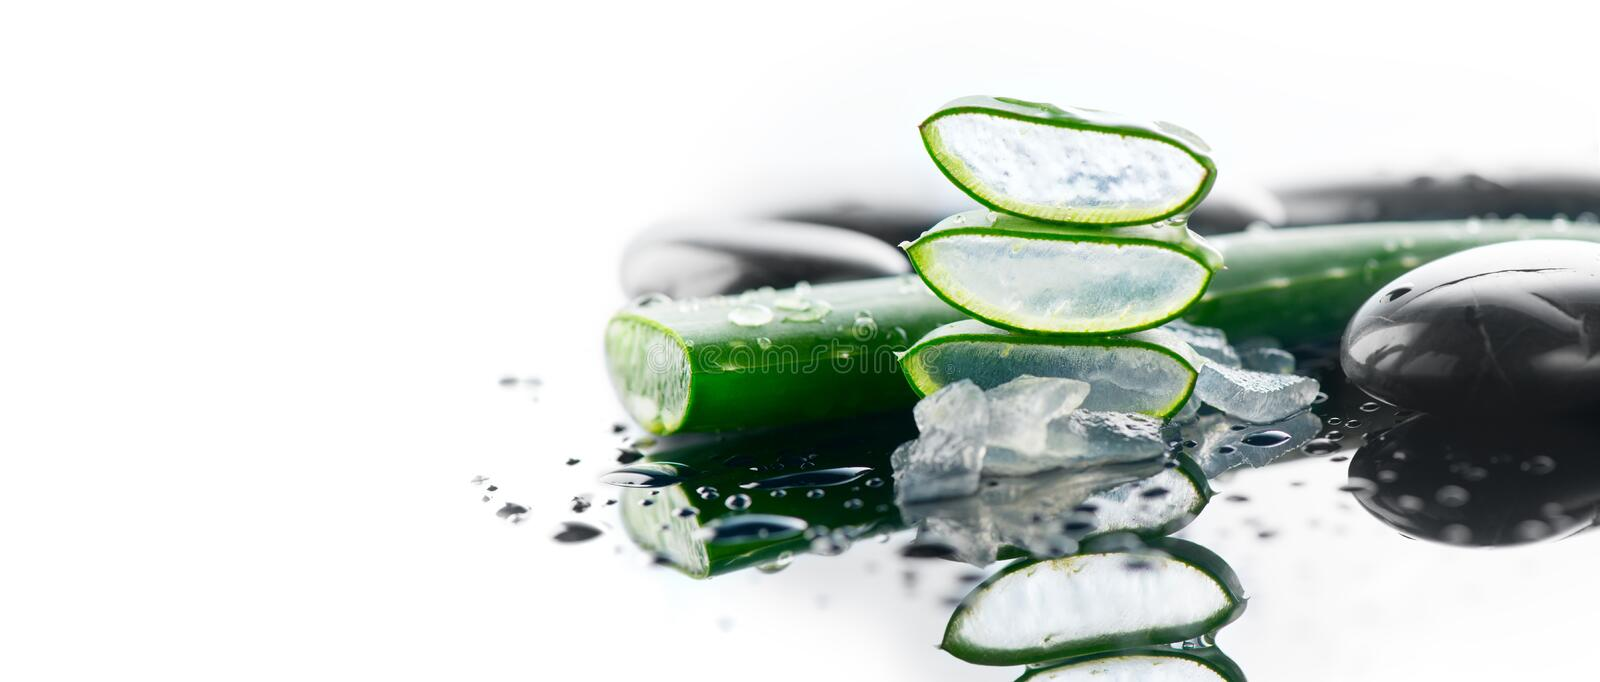 Aloe Vera sliced leaf and spa stones closeup on white background, natural organic renewal cosmetics, alternative medicine stock photography